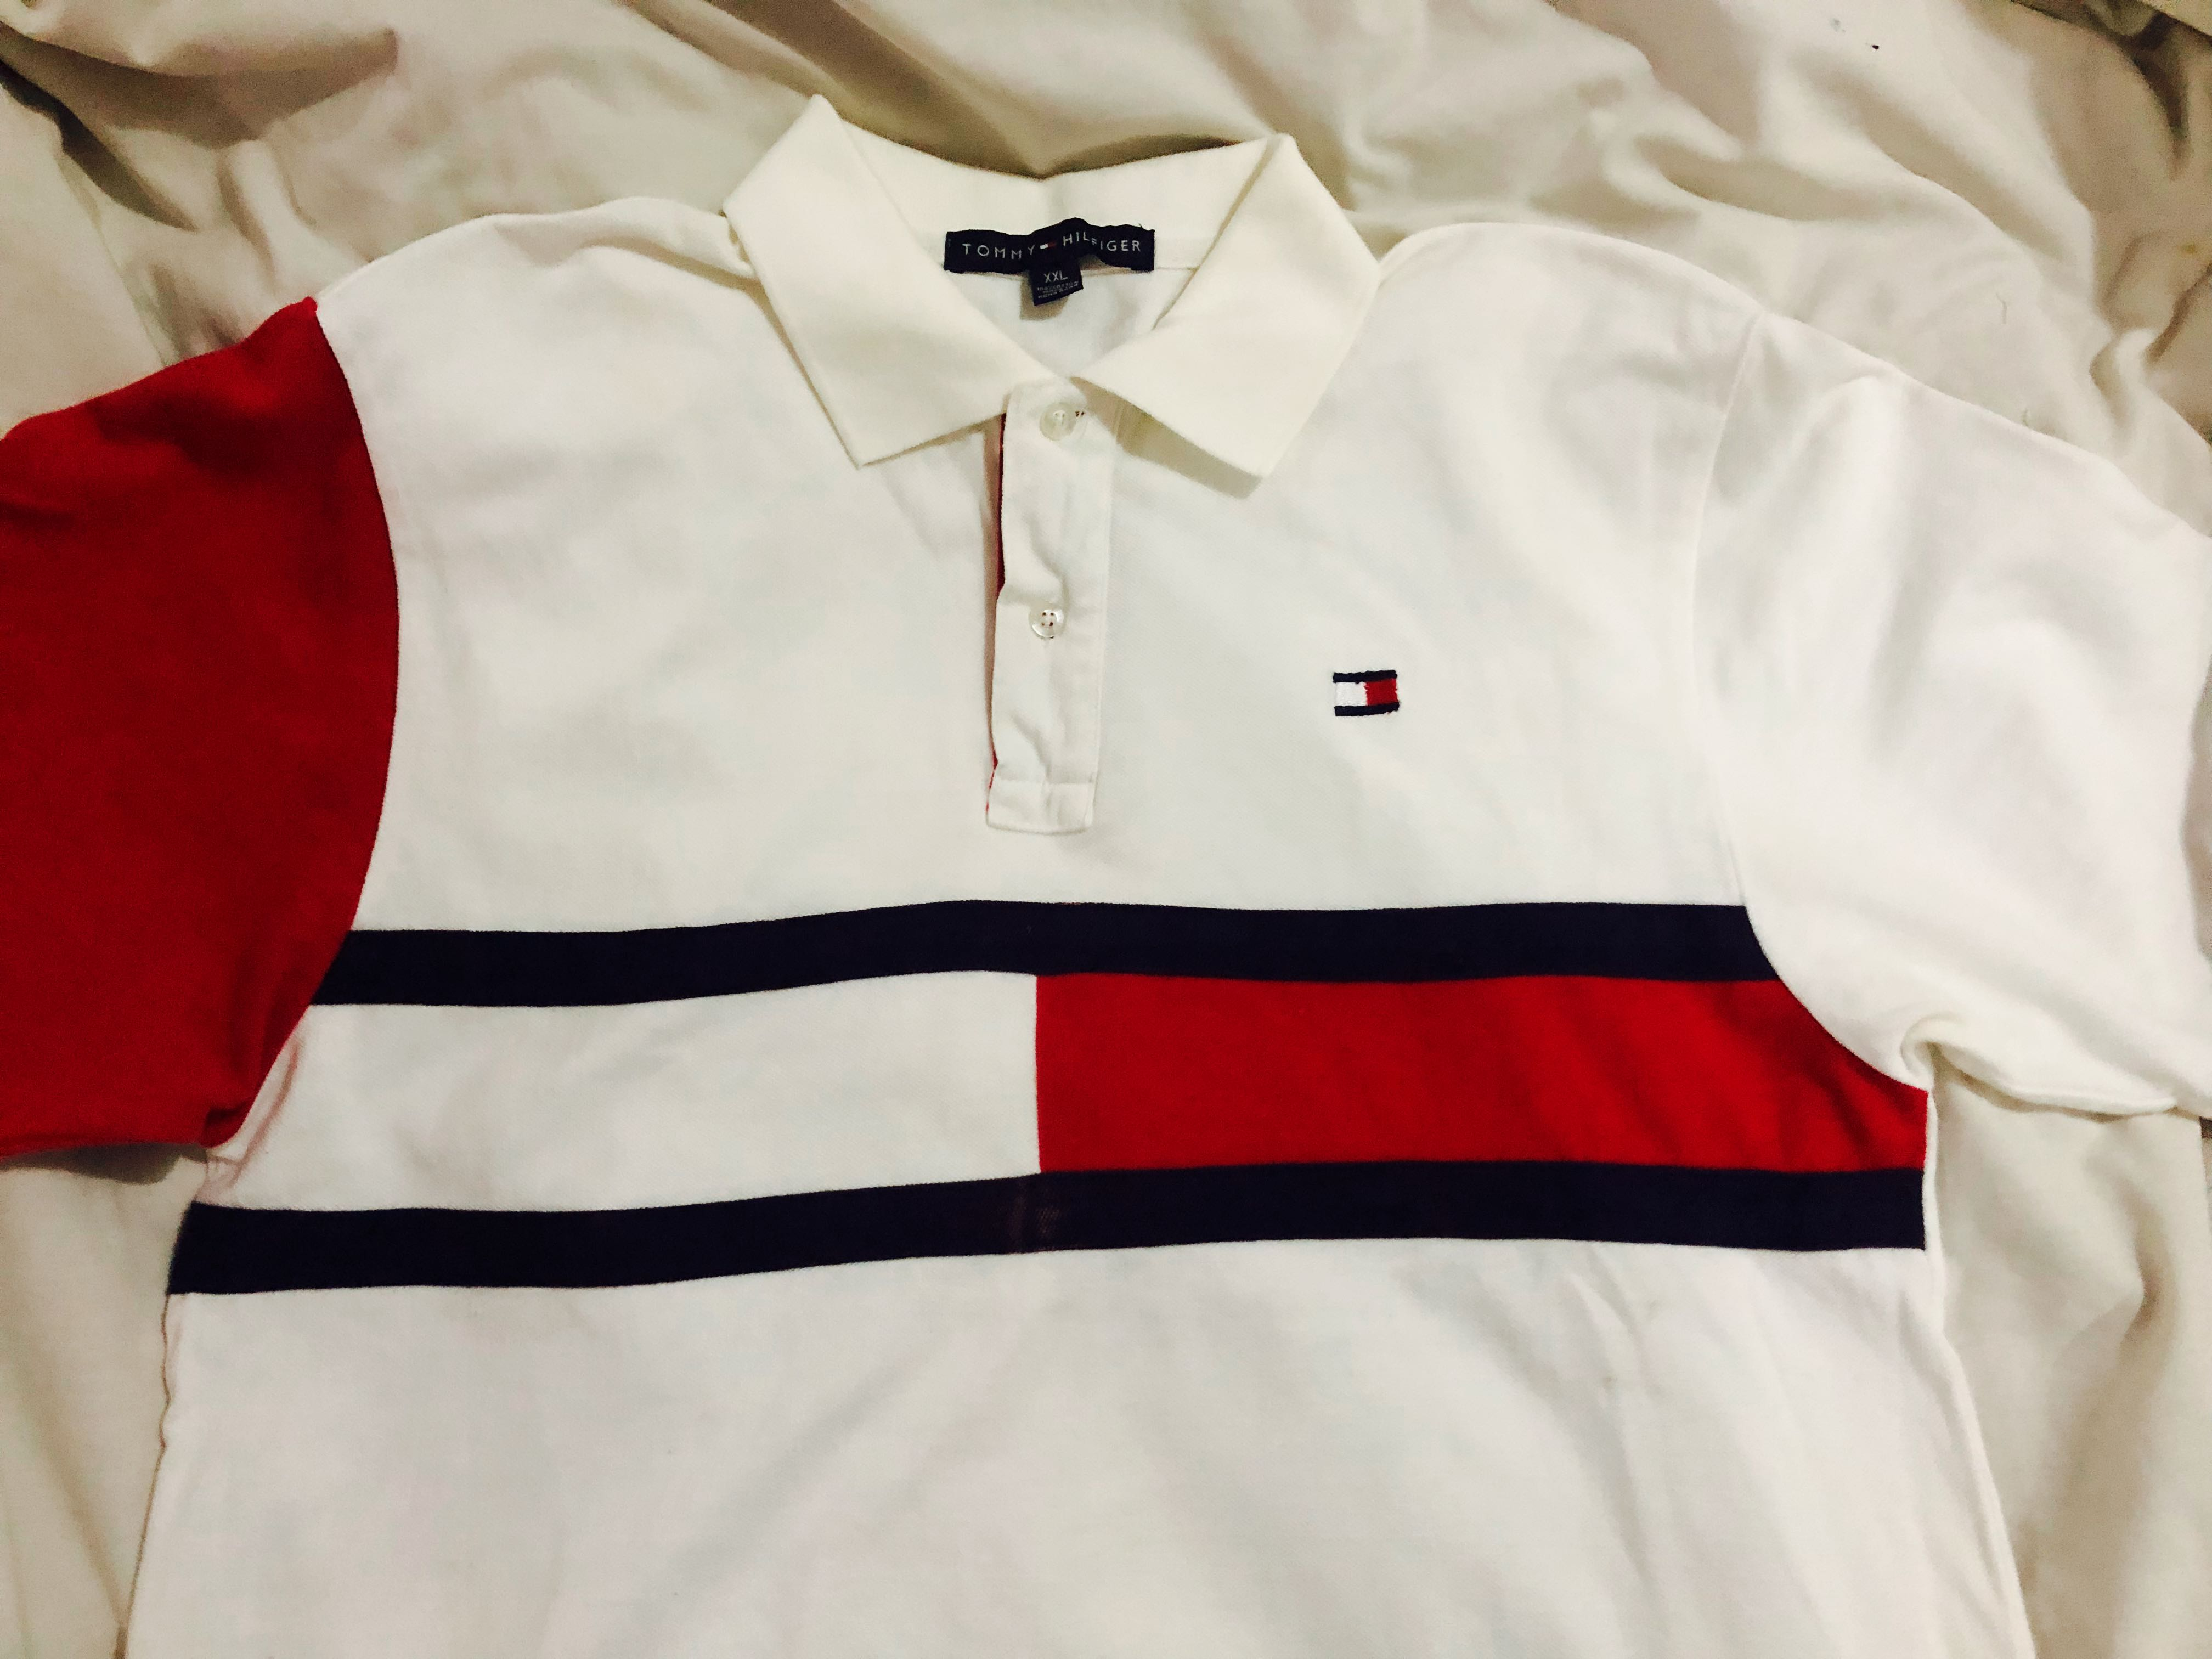 b58bcf2a673 Vintage Tommy Hilfiger Polo Tee, Men's Fashion, Clothes, Tops on Carousell